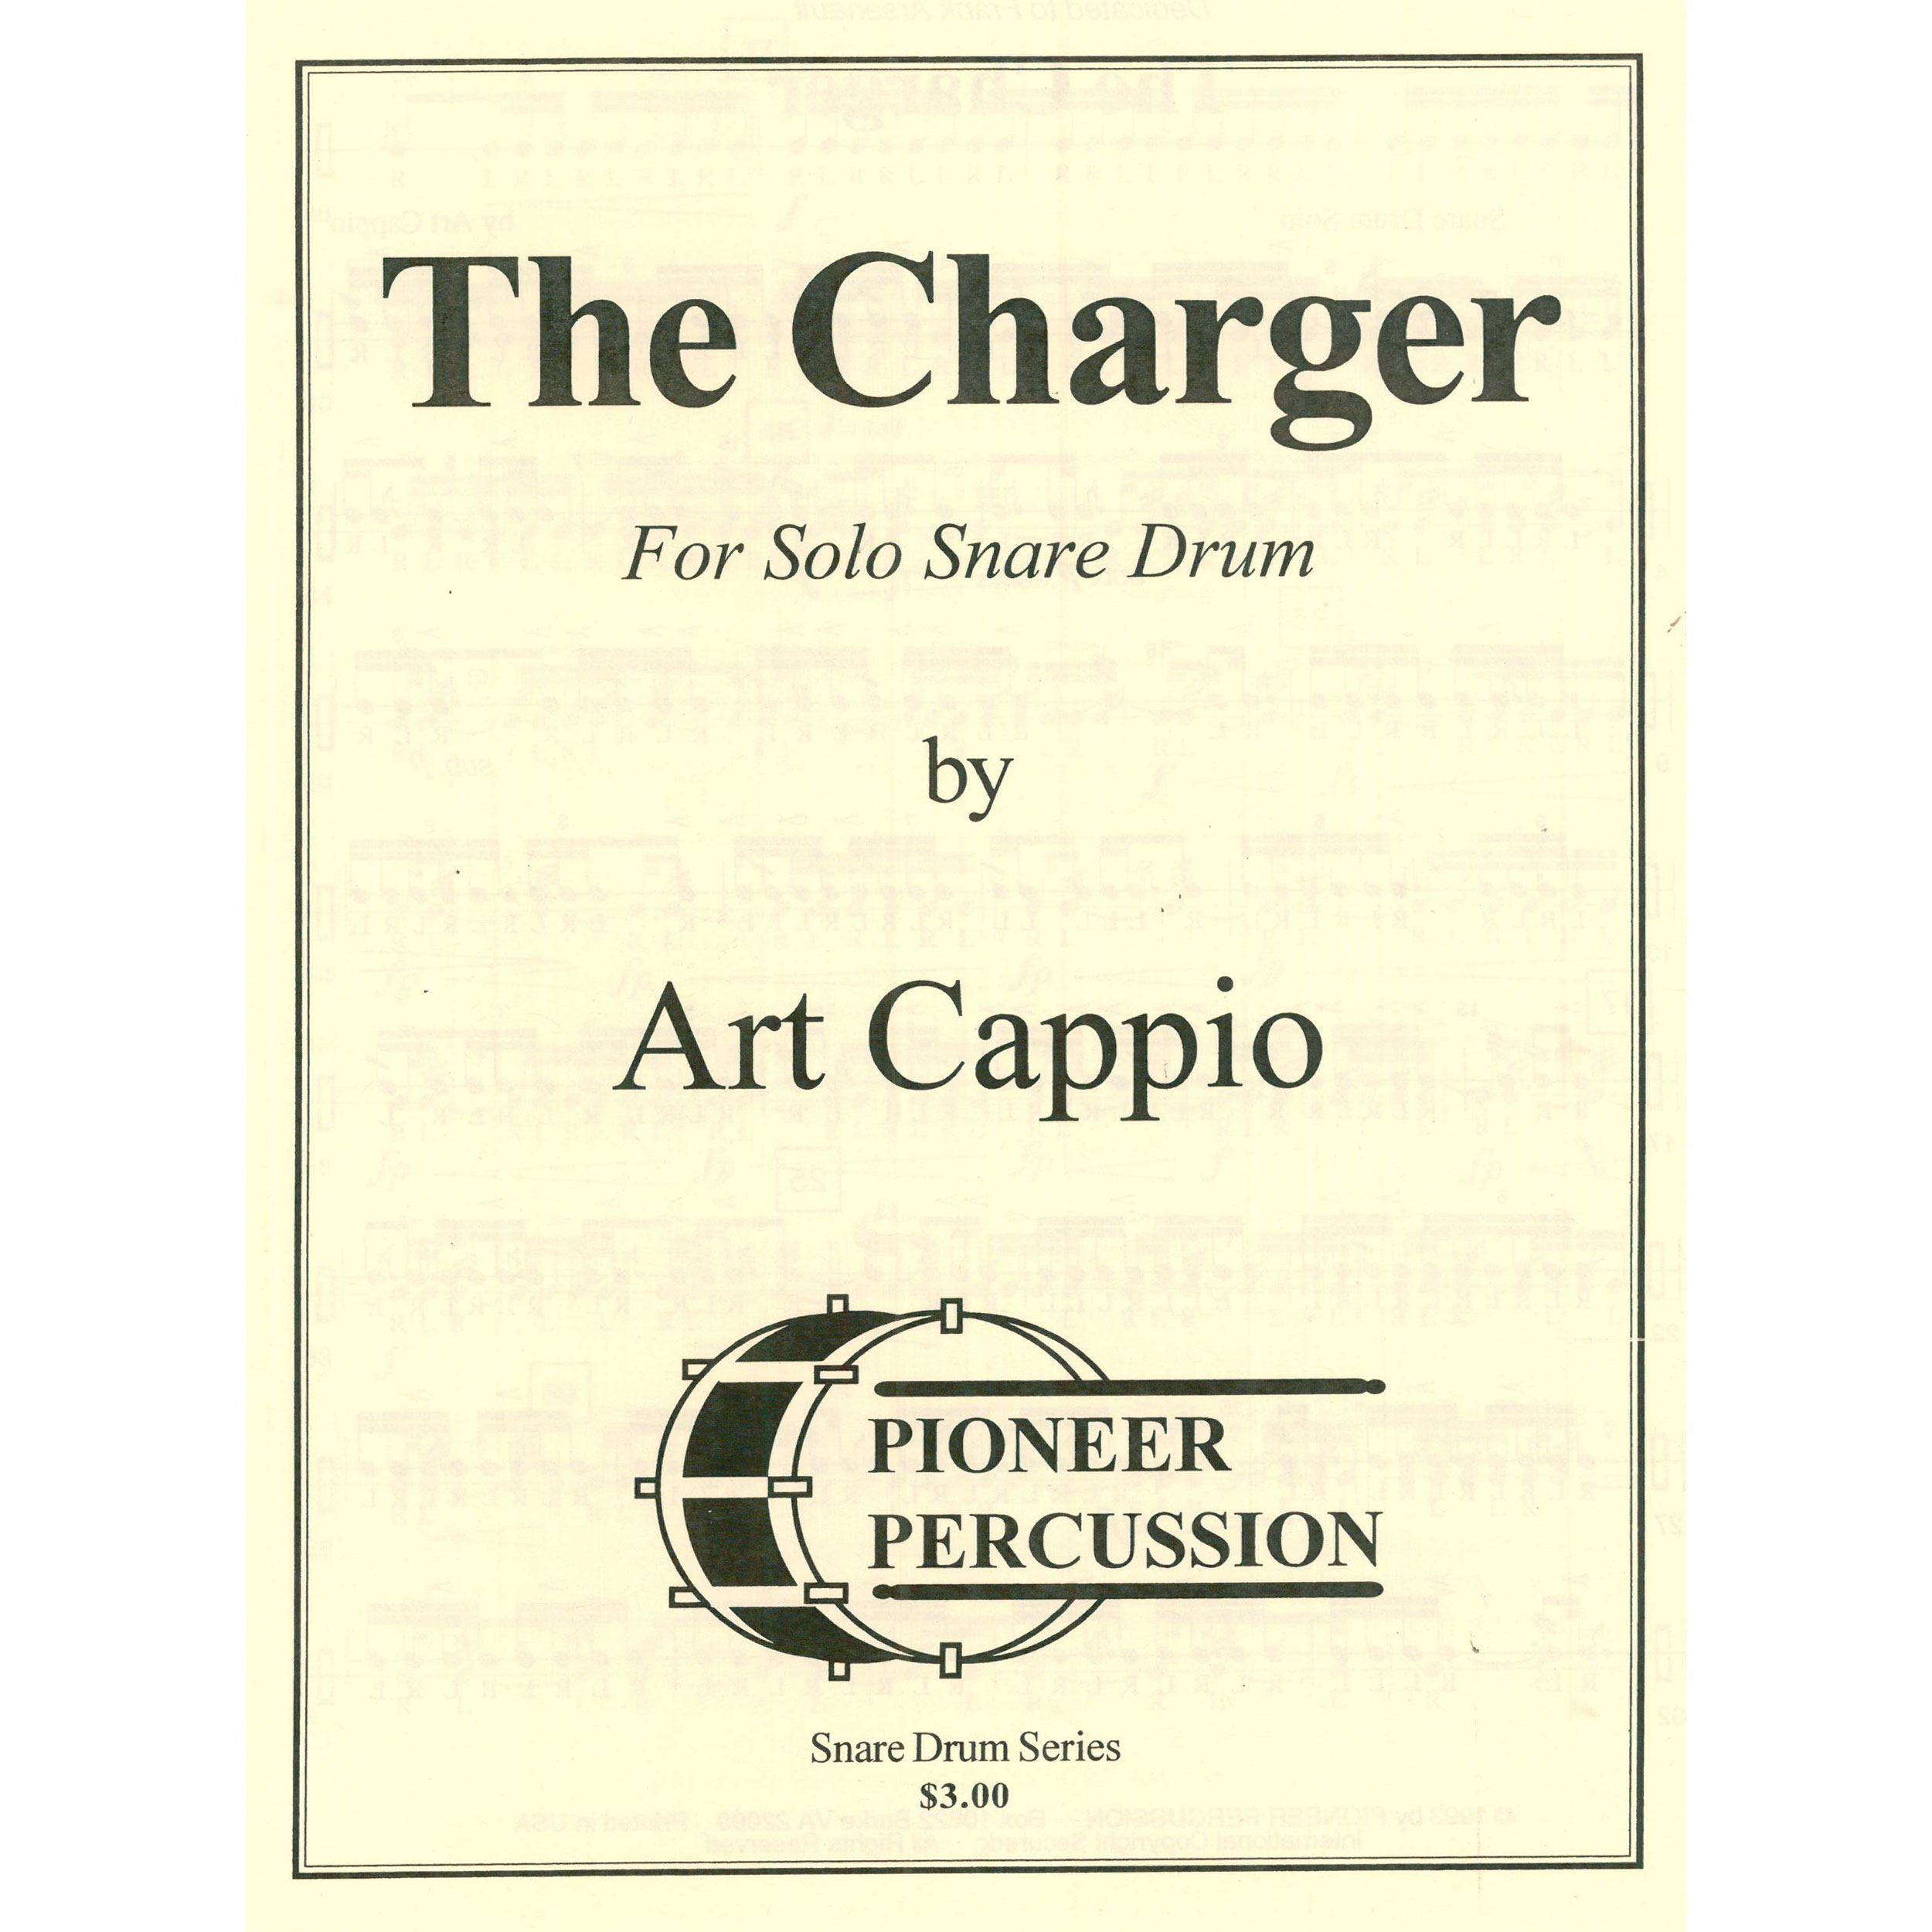 The Charger by Art Cappio